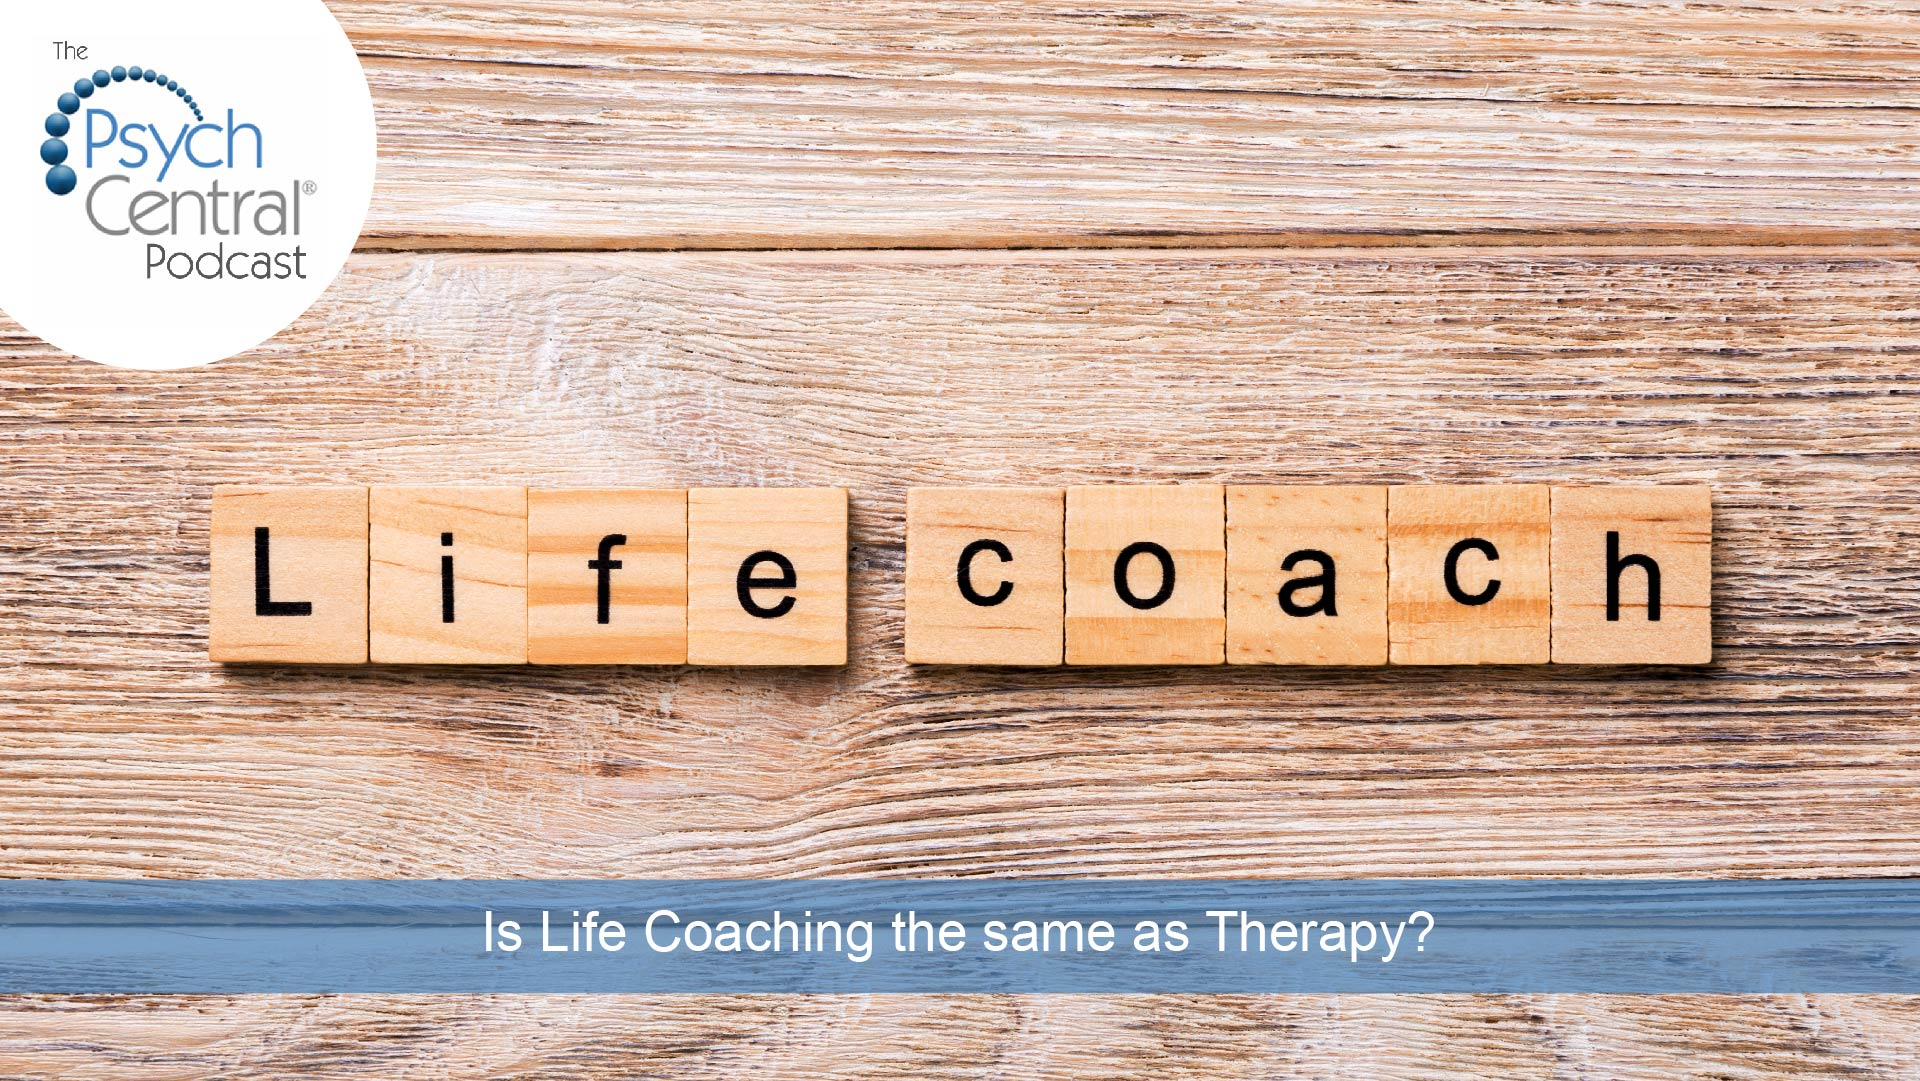 scrabble tiles spelling out Life Coach on a wooden background